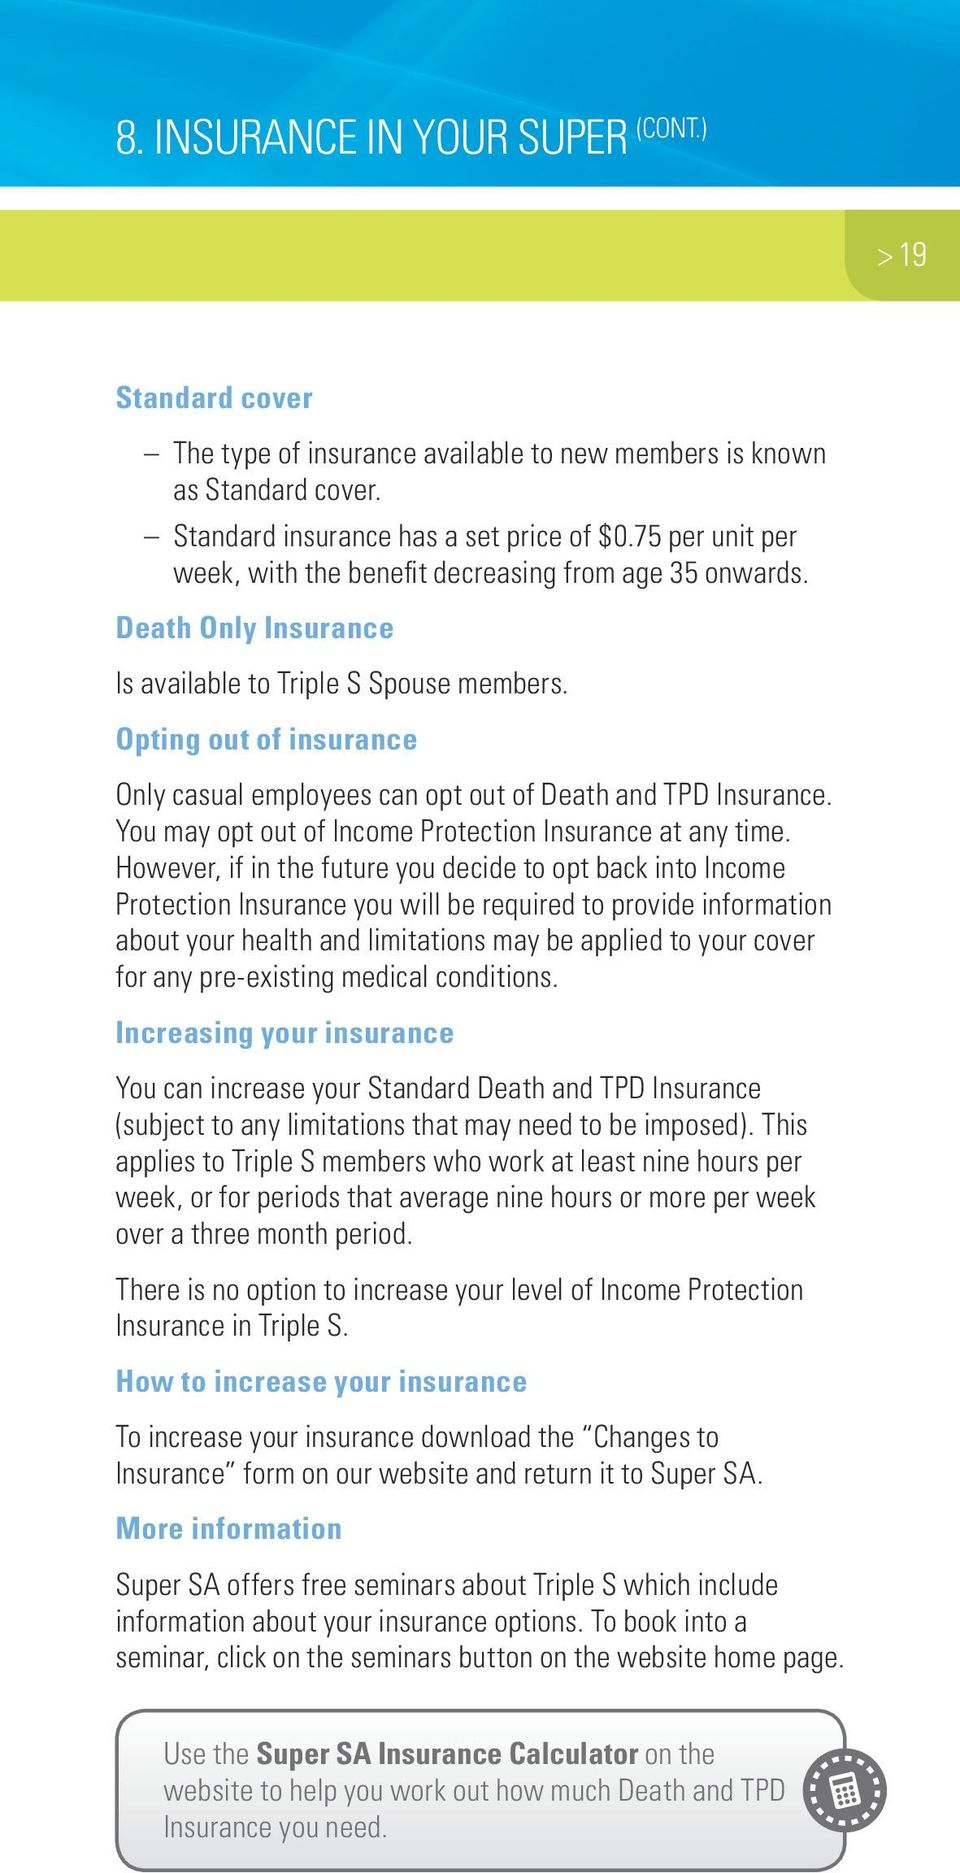 Opting out of insurance Only casual employees can opt out of Death and TPD Insurance. You may opt out of Income Protection Insurance at any time.